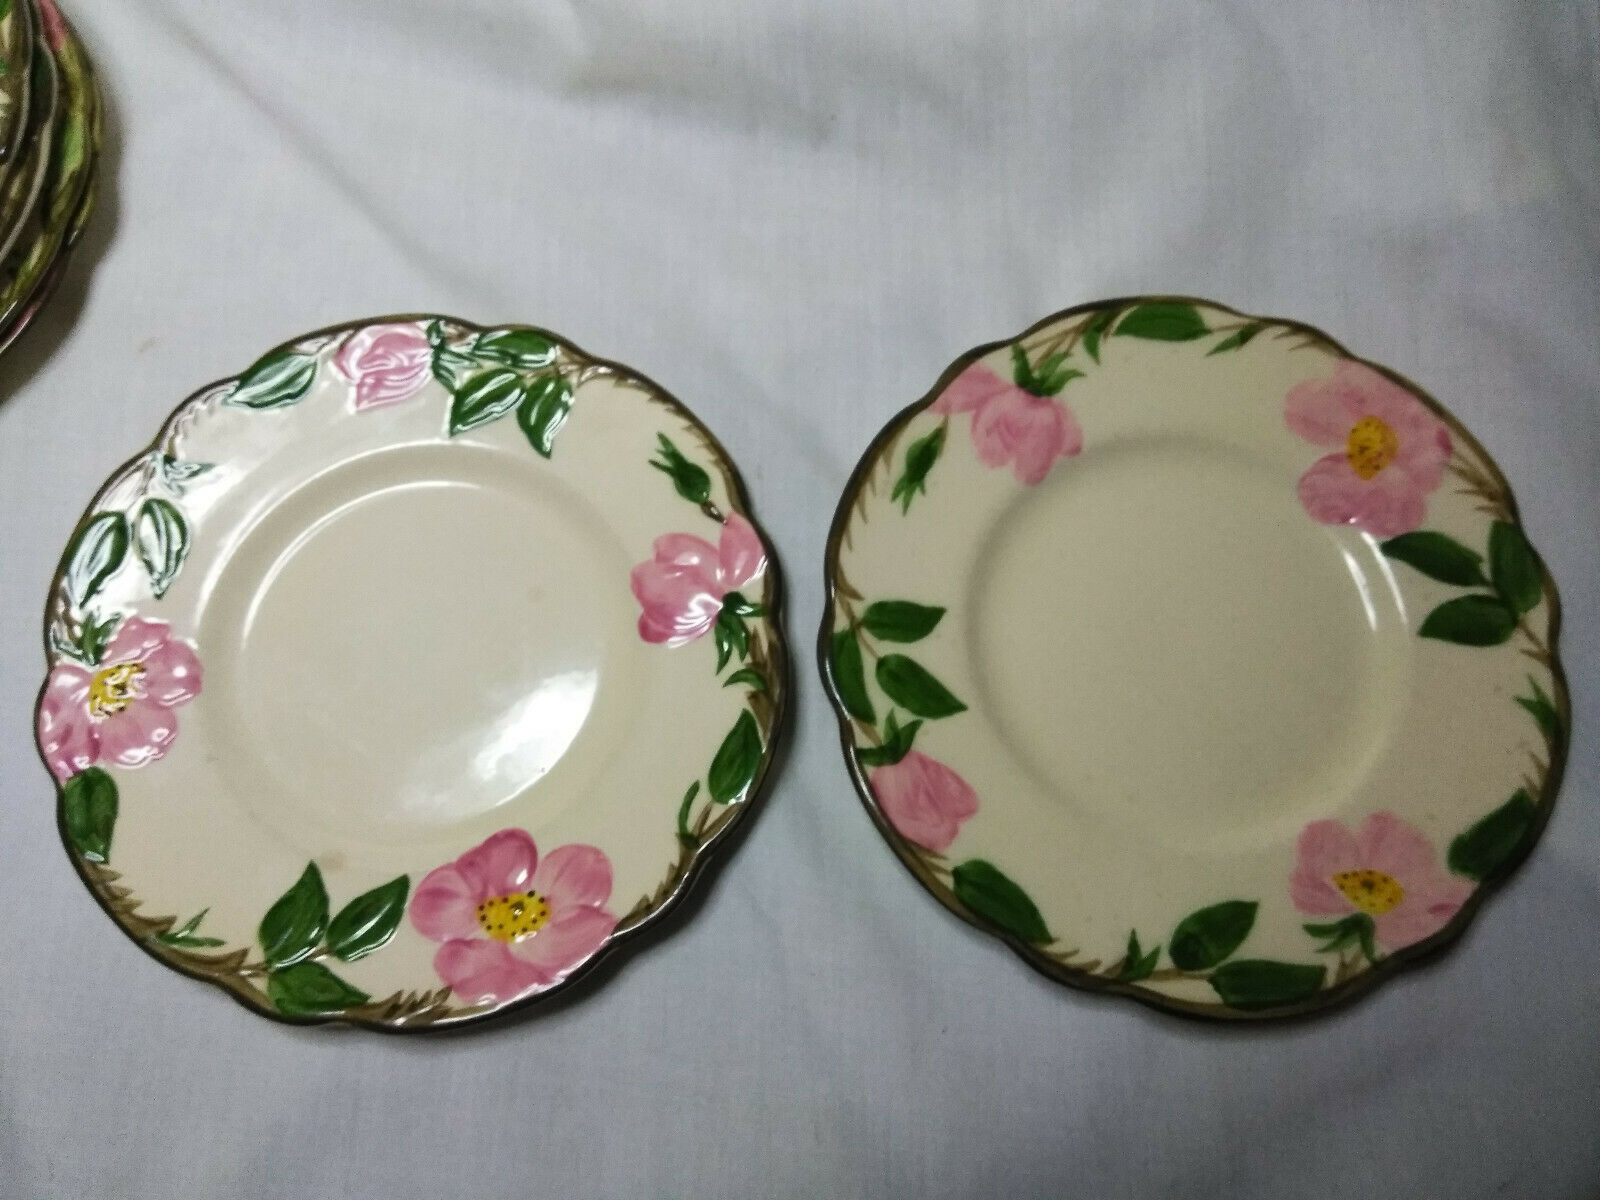 Vintage Franciscan China Desert Rose Set of 6-6.5 inch Cheese/Dessert  Plates B